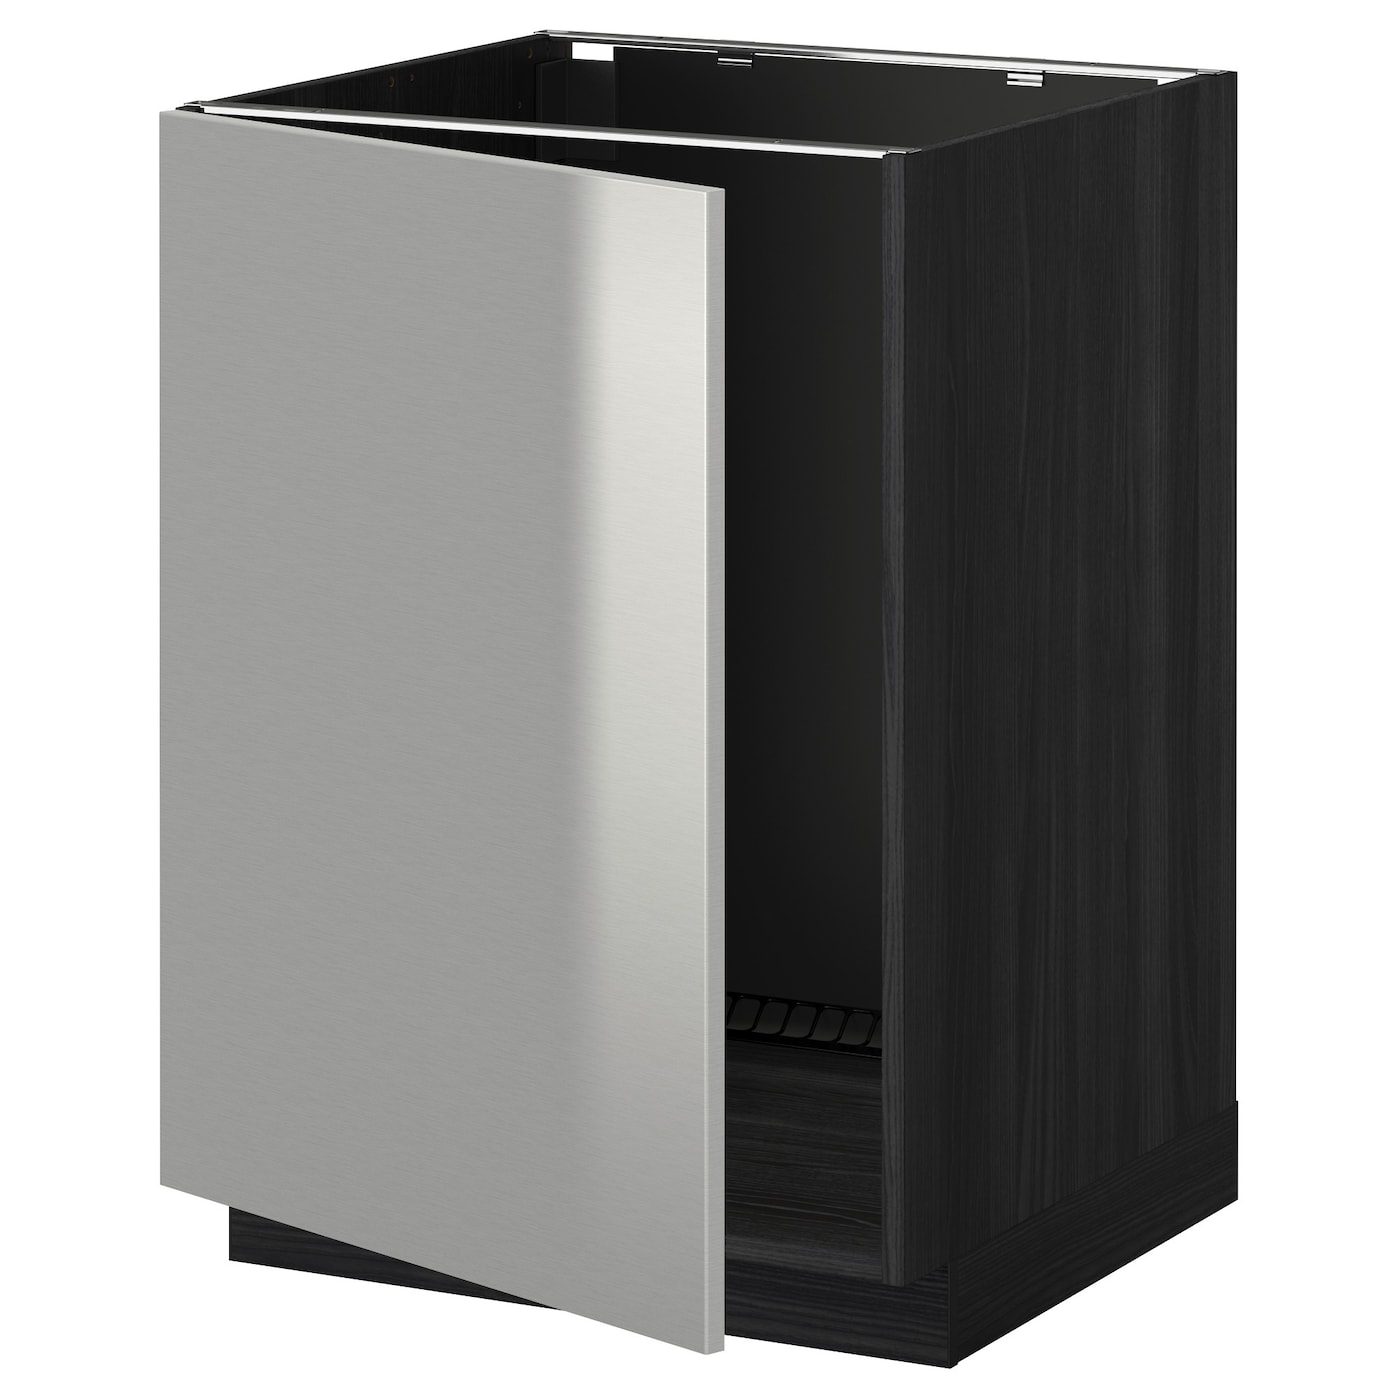 Metod base cabinet for sink black grevsta stainless steel for Stainless steel kitchen base cabinets